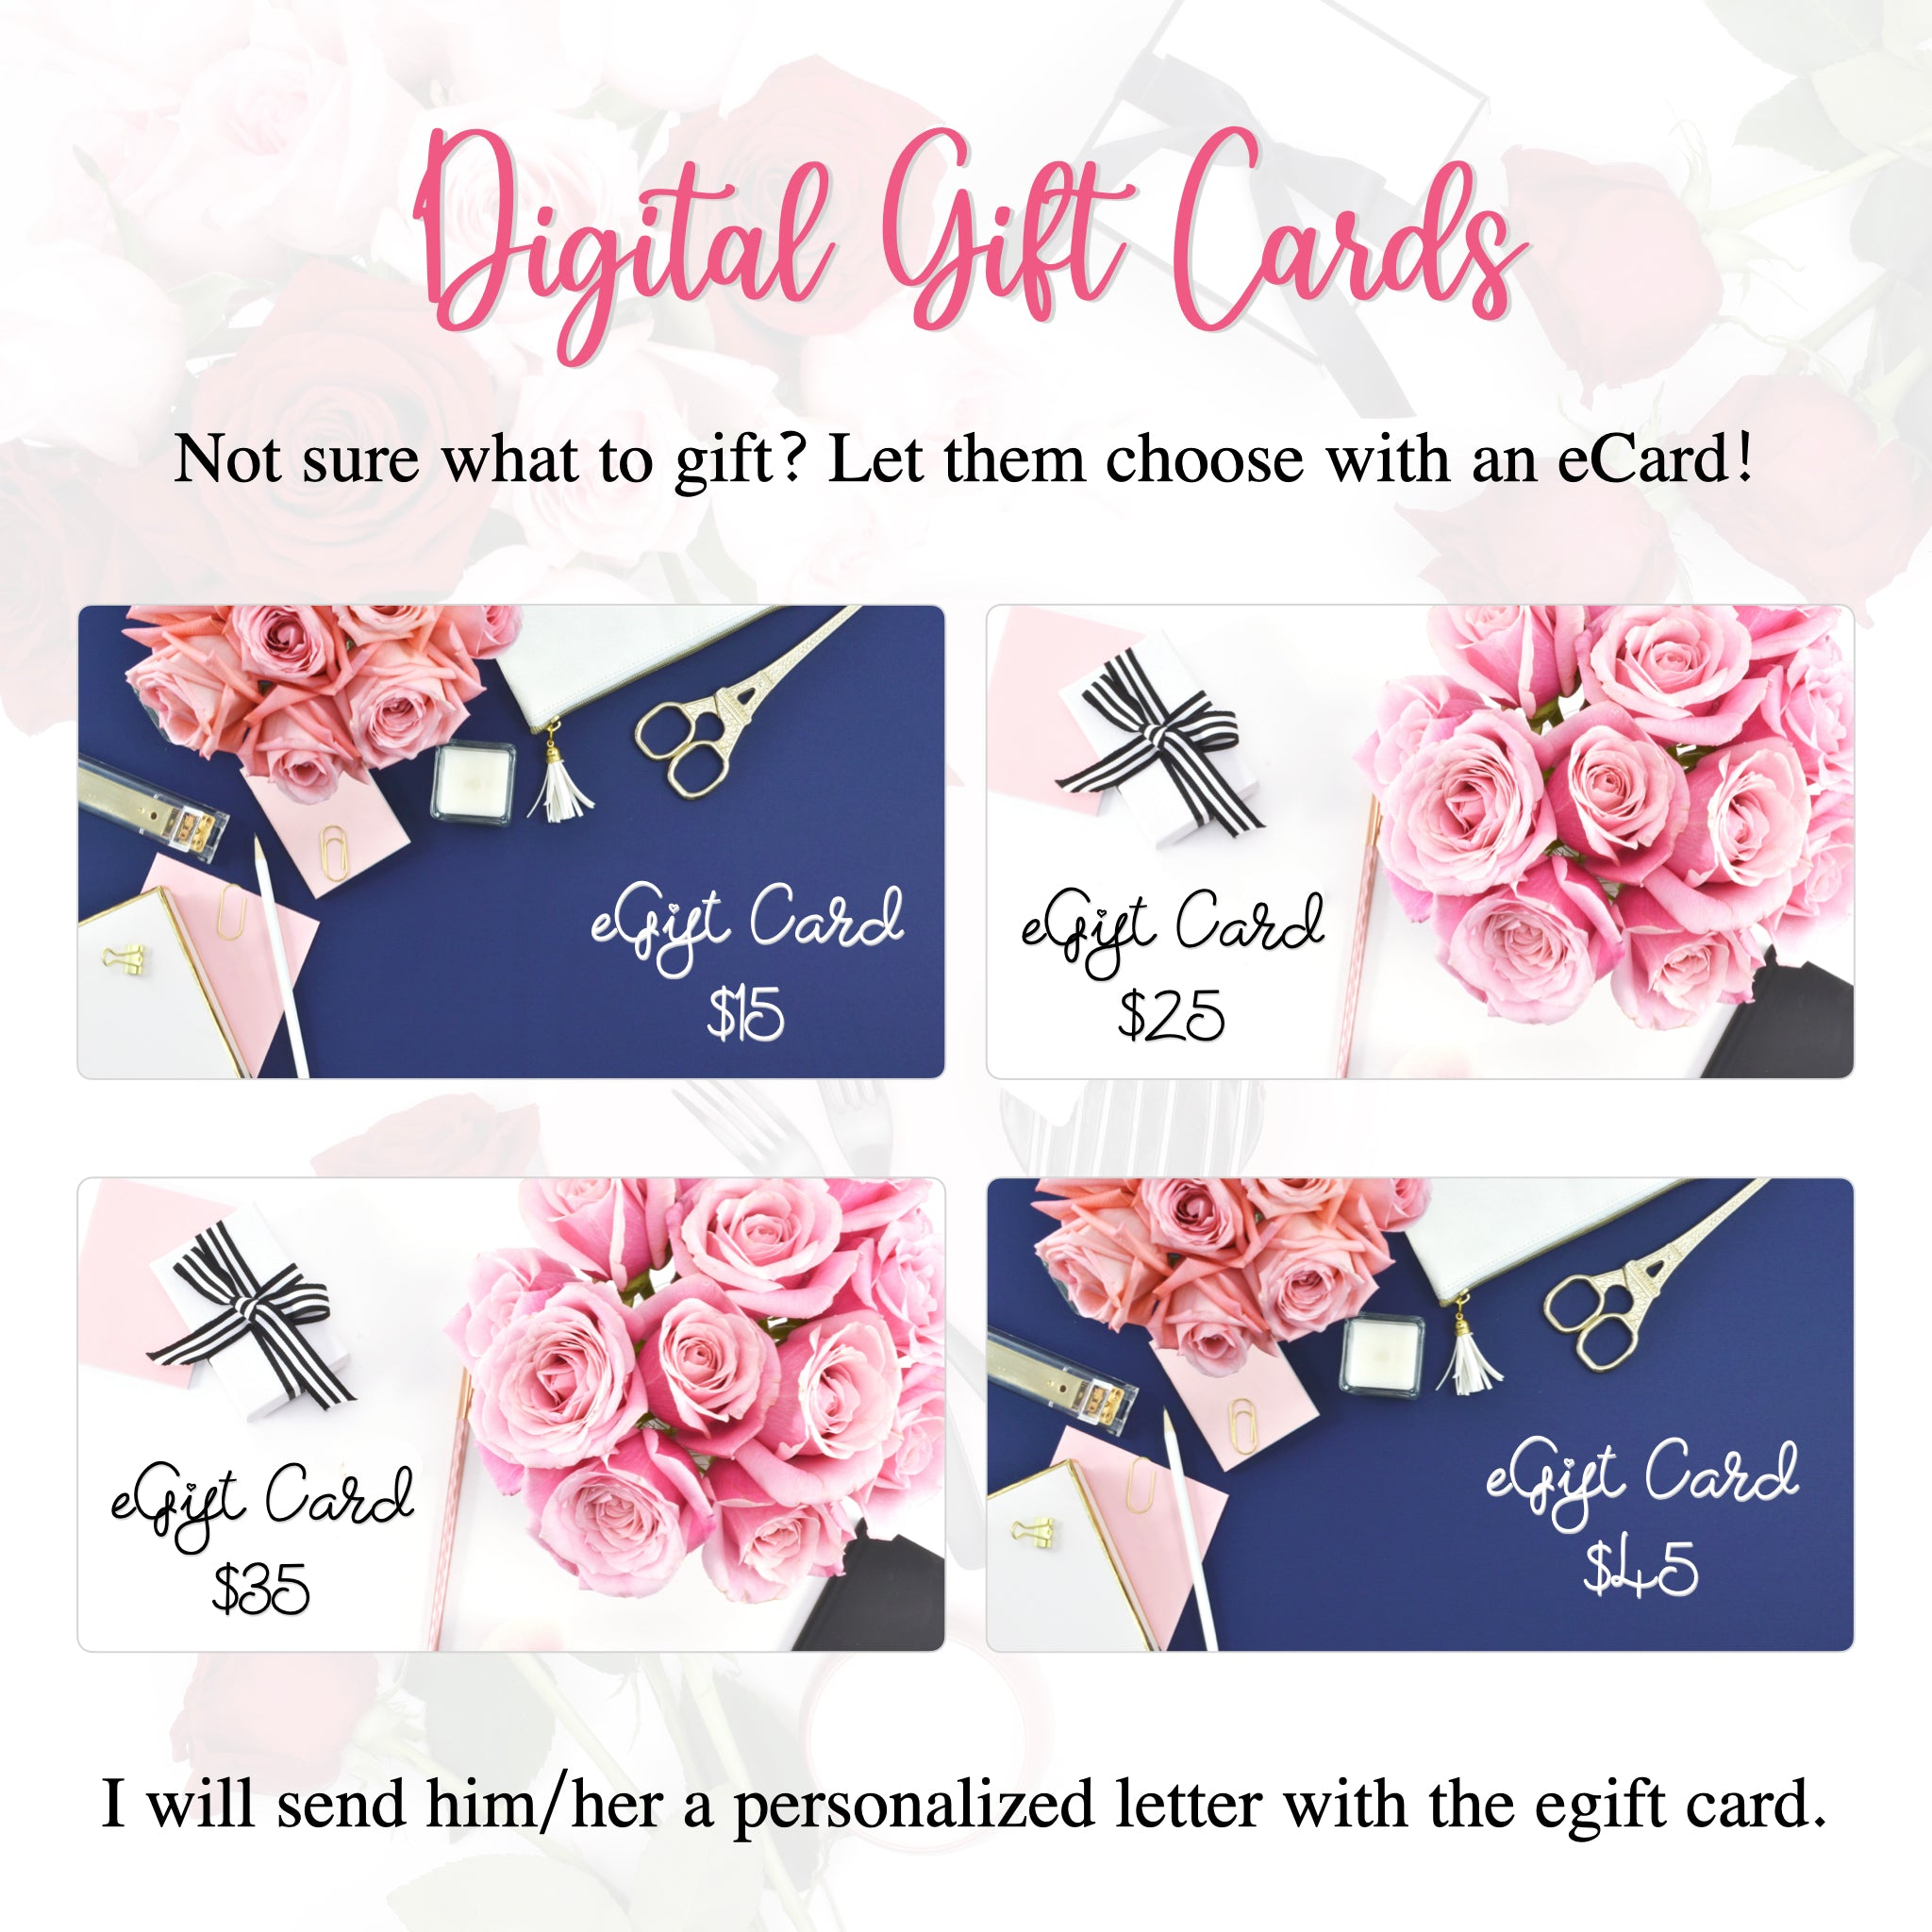 eGift Card - Digital Gift Card